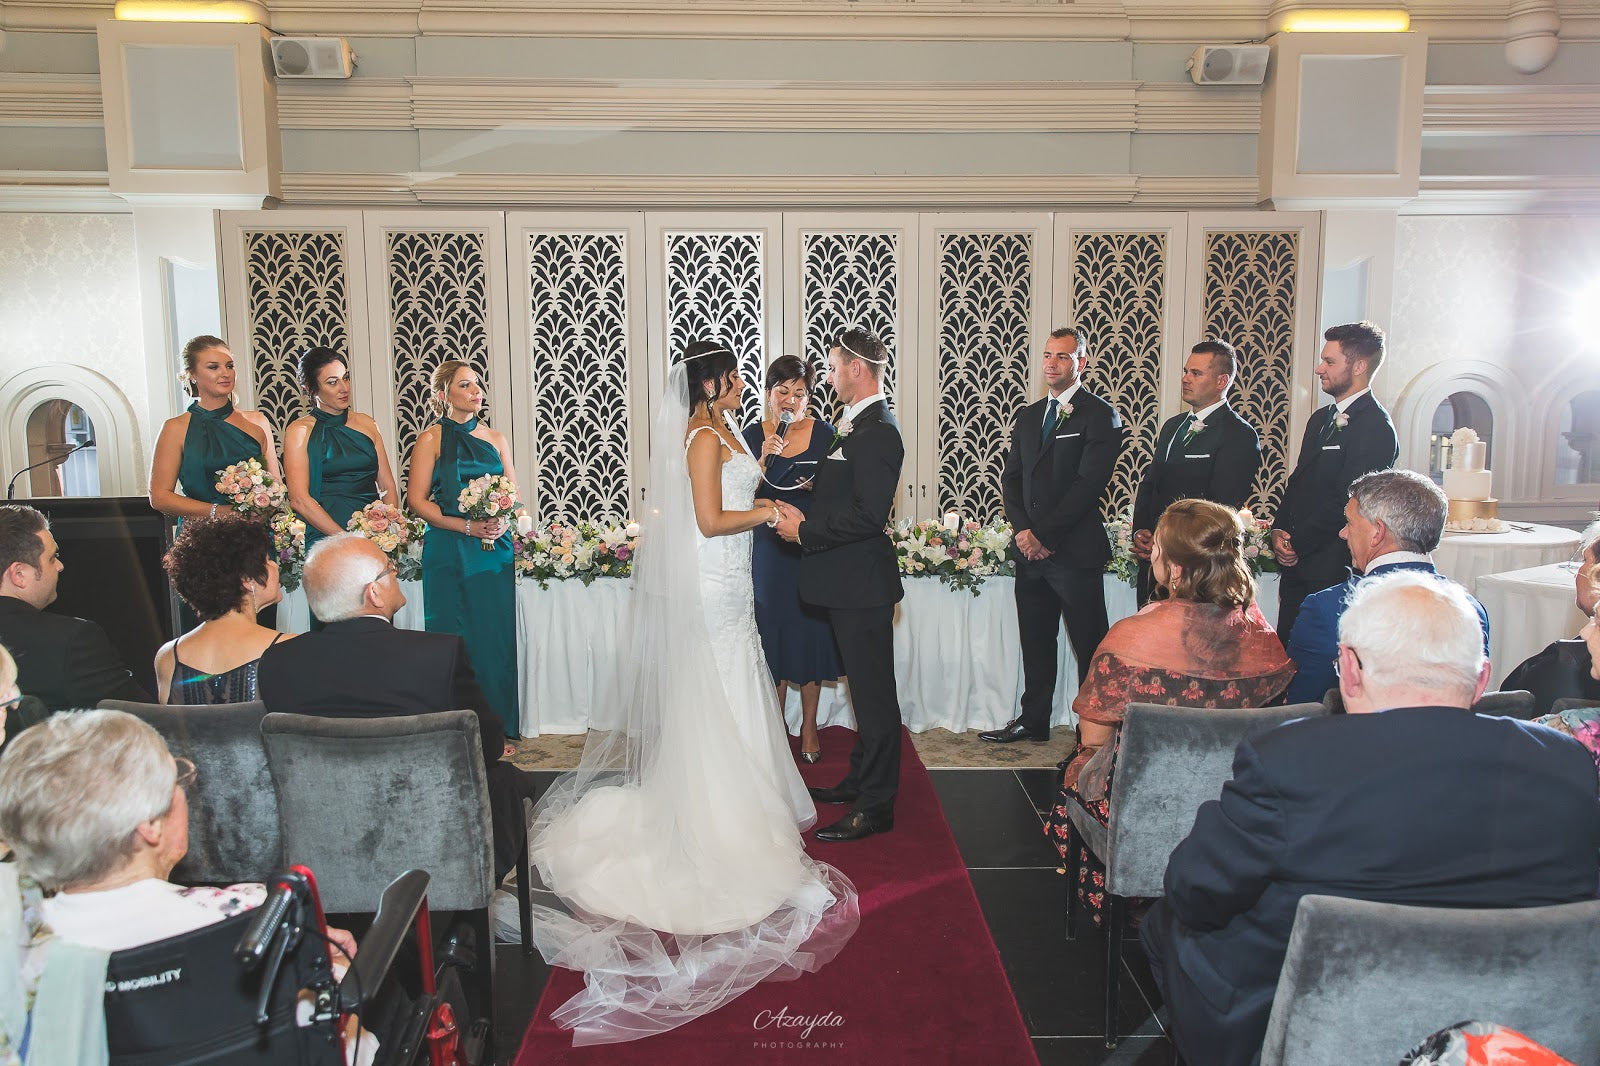 Angelique & Jack, The Tea Room QVB Wedding